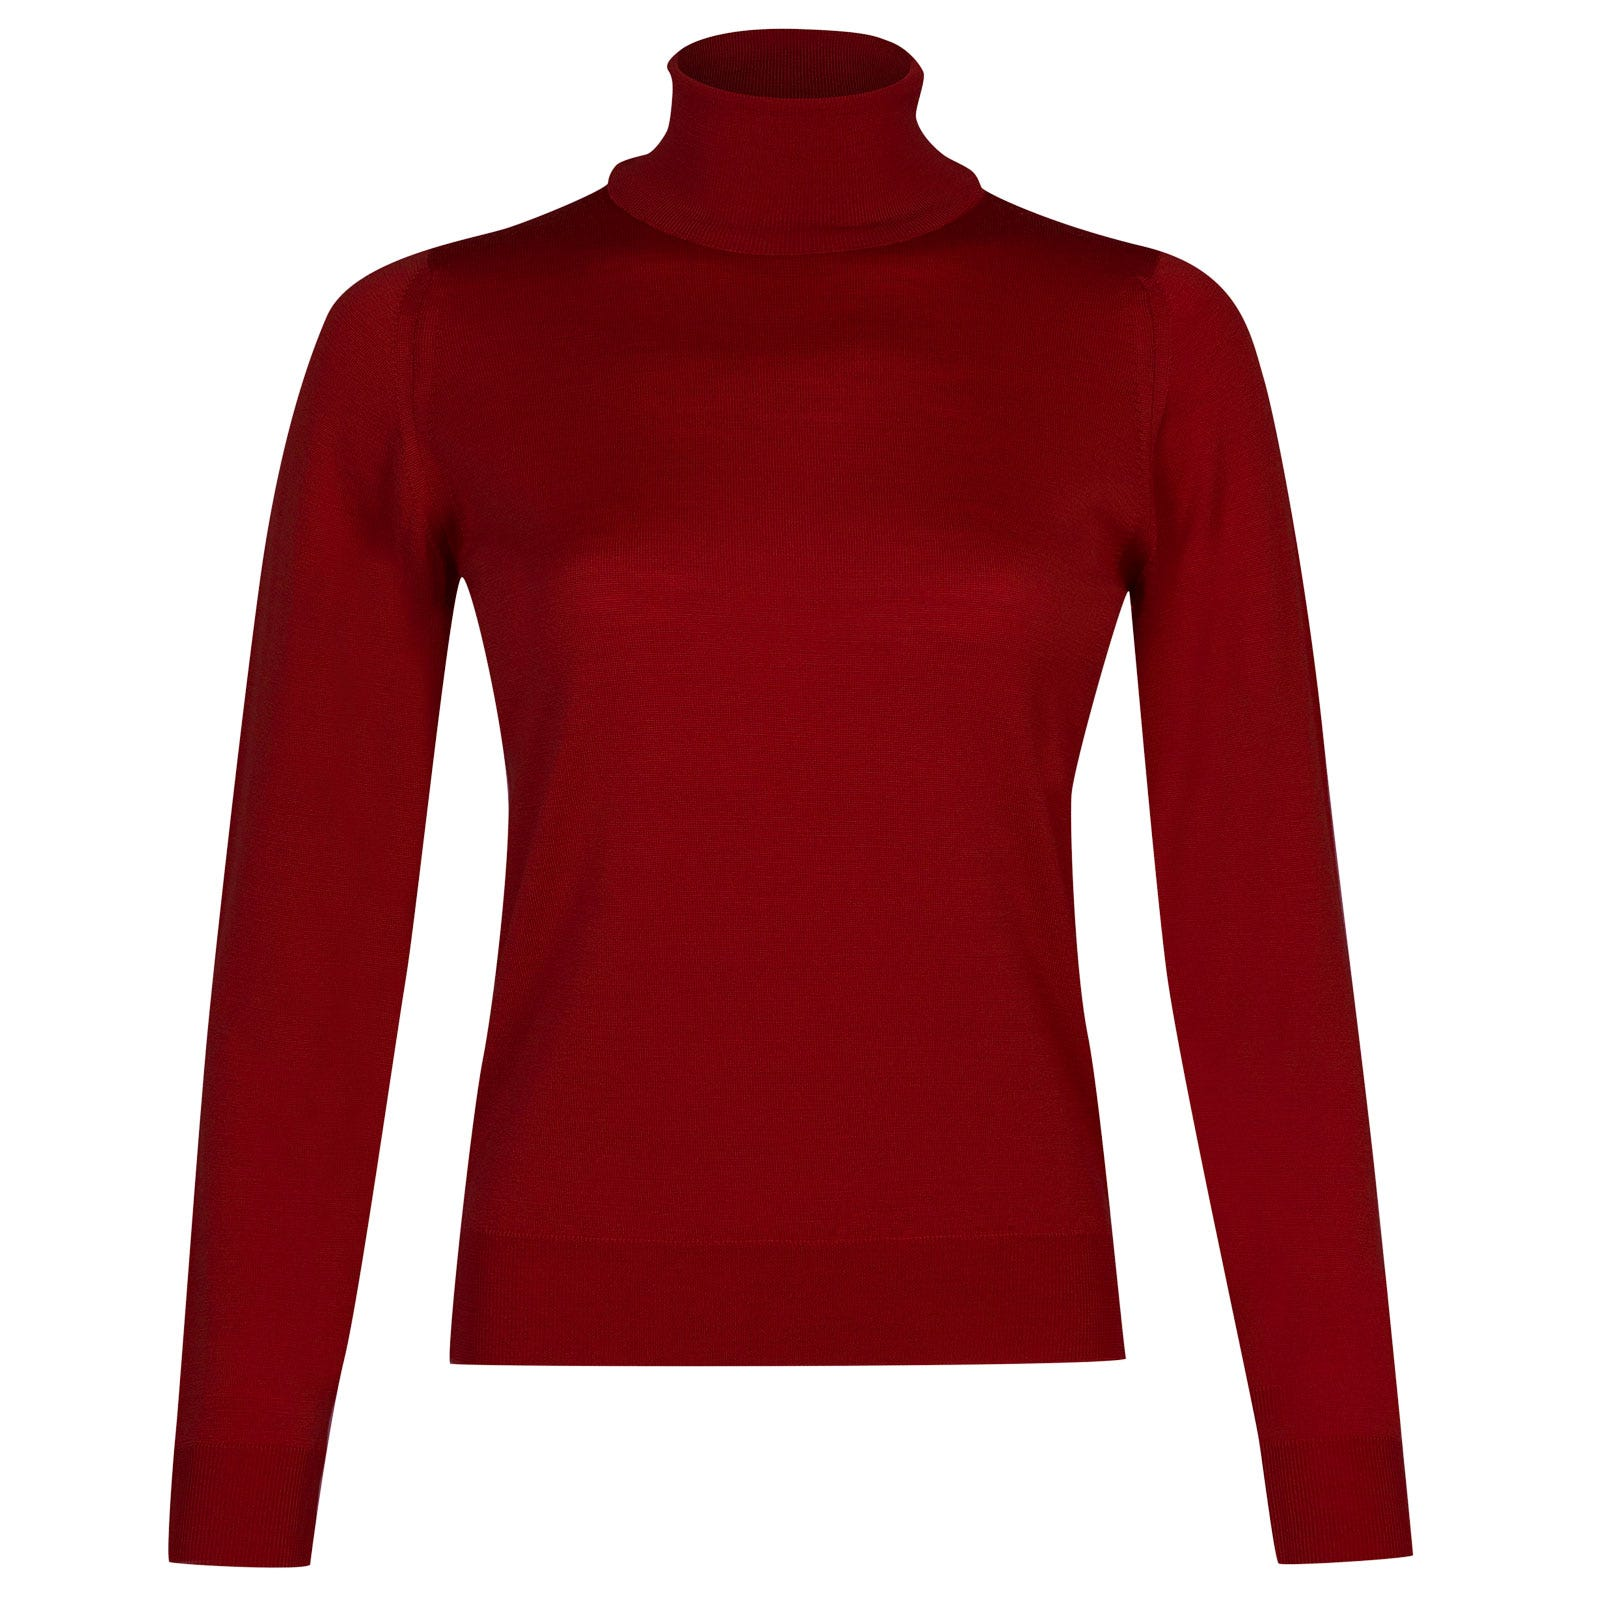 John Smedley siena Merino Wool Sweater in Crimson Forest-S